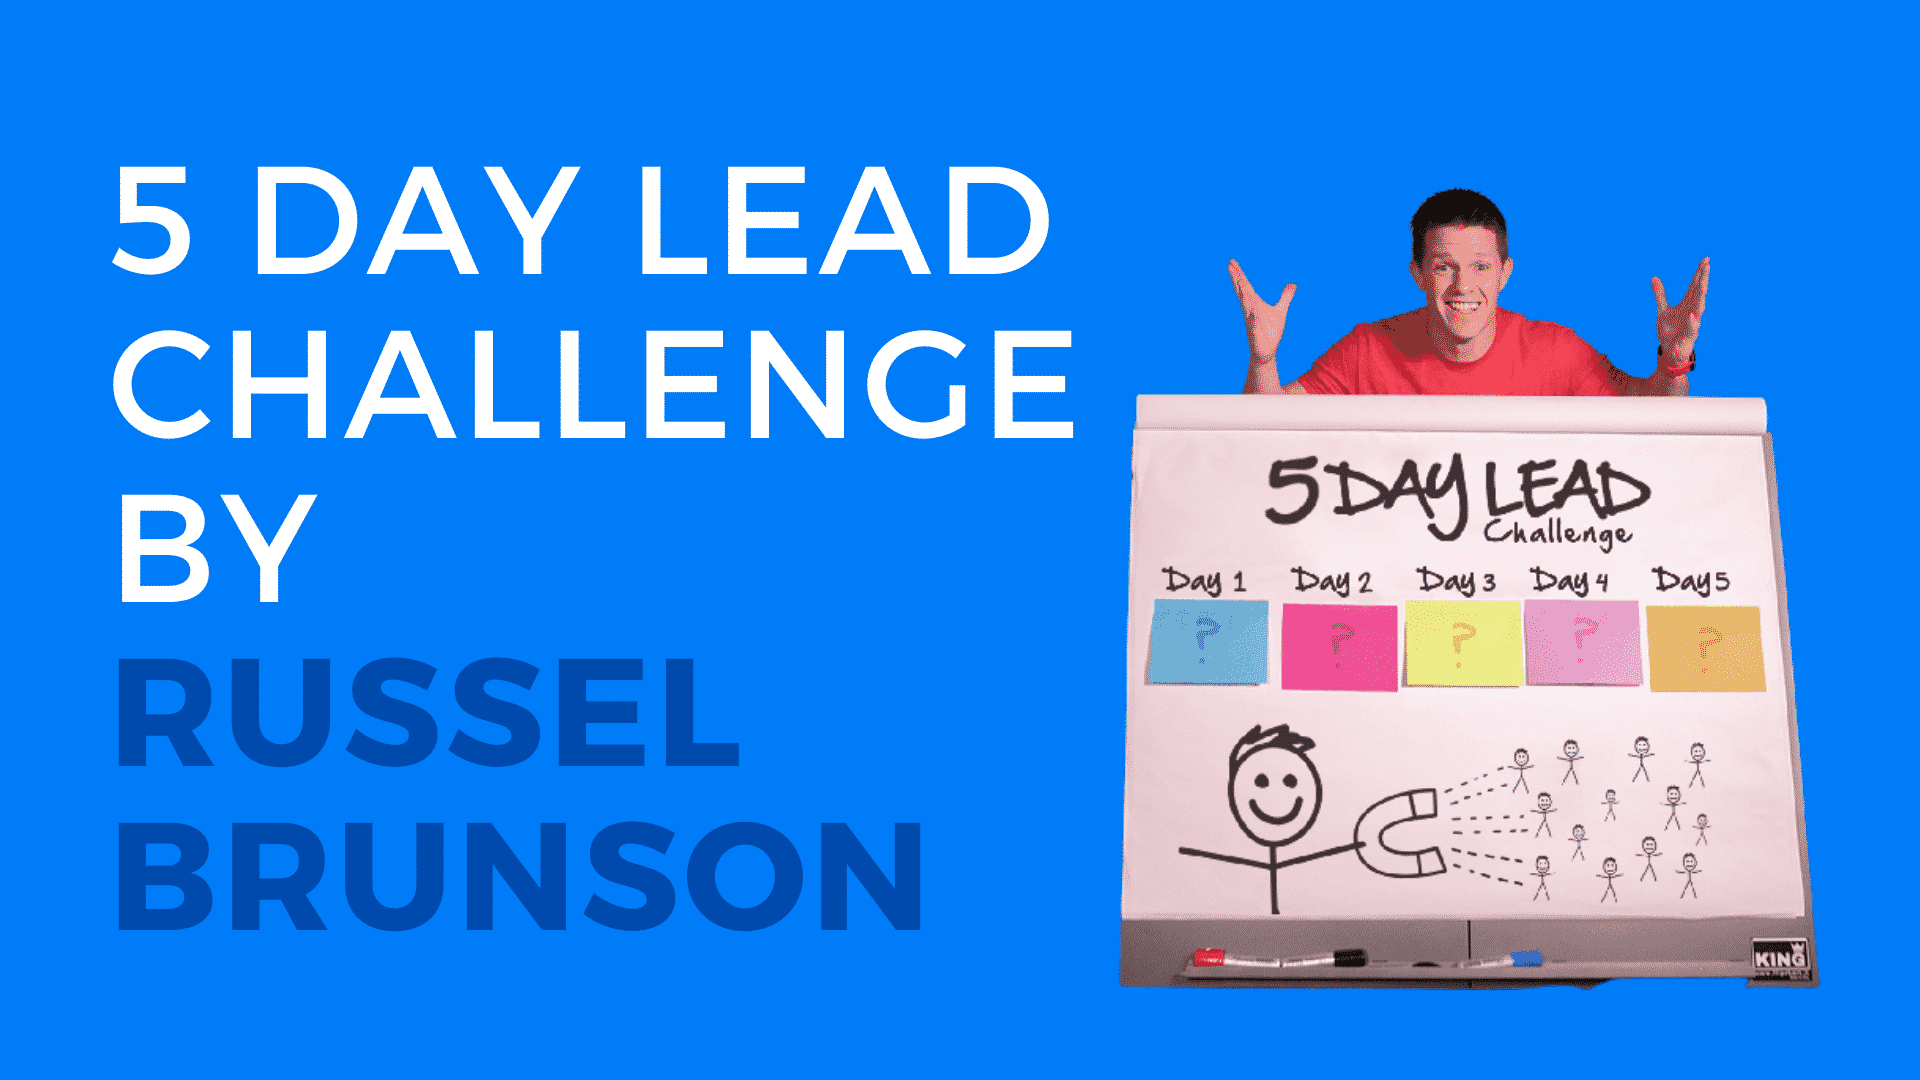 5 day lead challenge